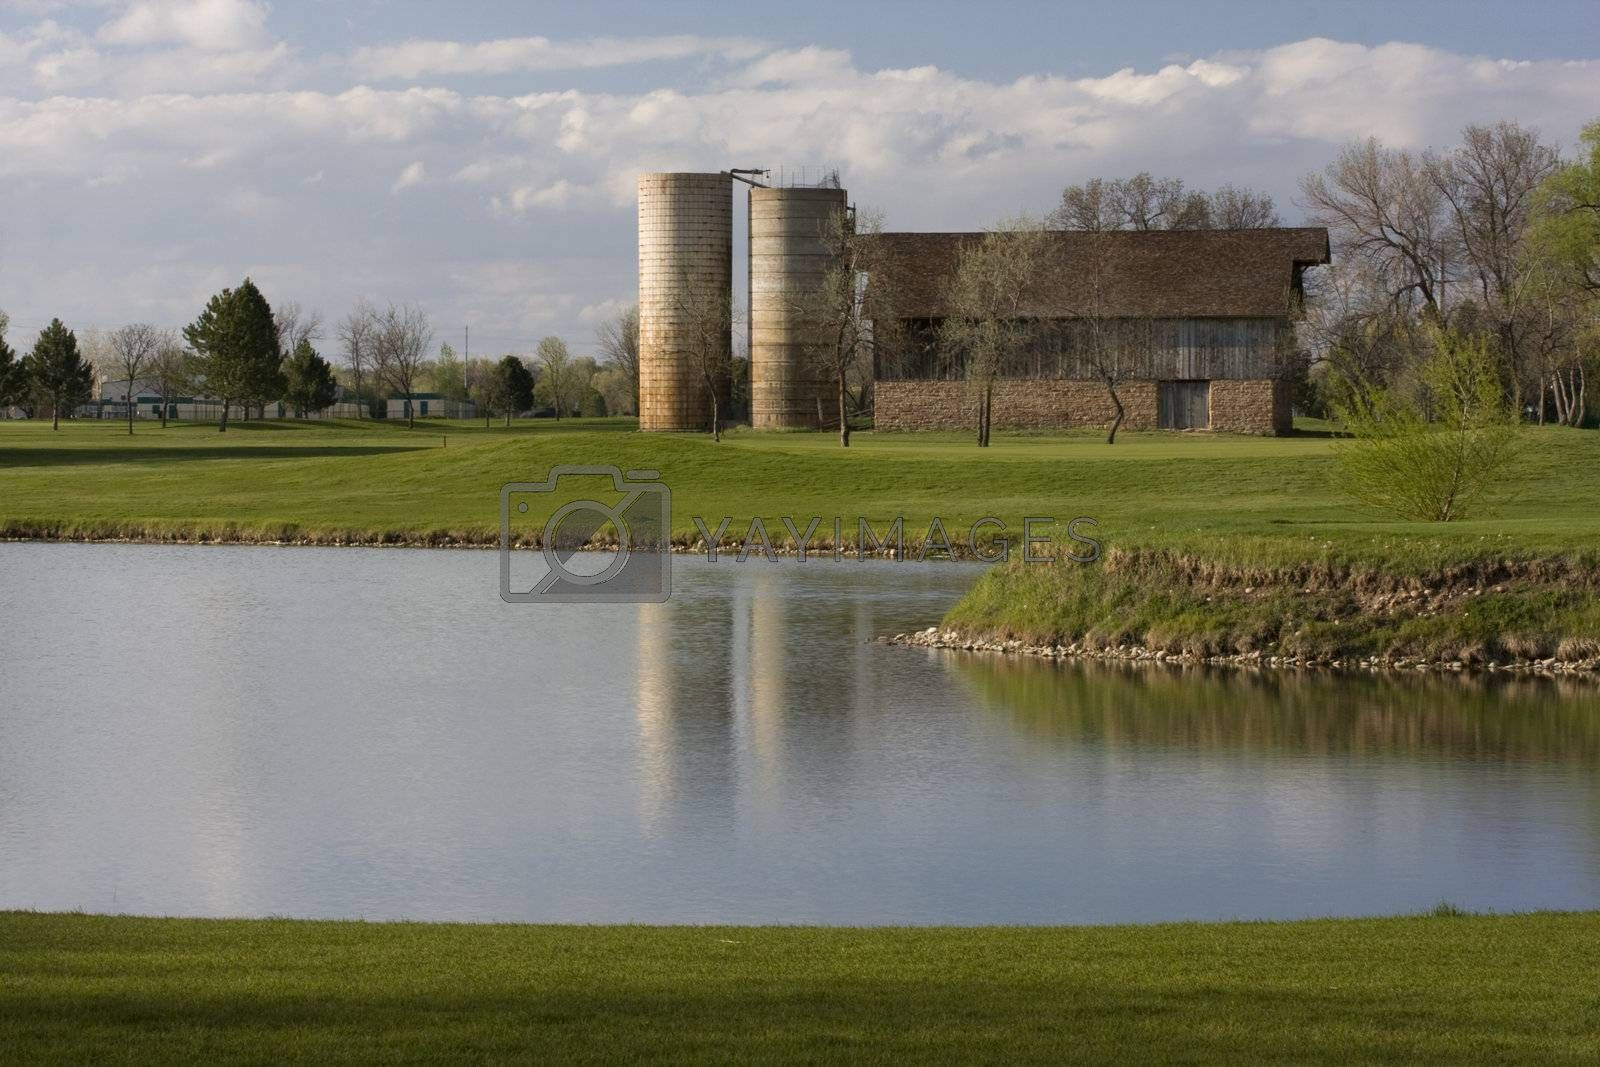 barn with two silos surrounded by green meadows, lake and houses - old farm turned into a golf course